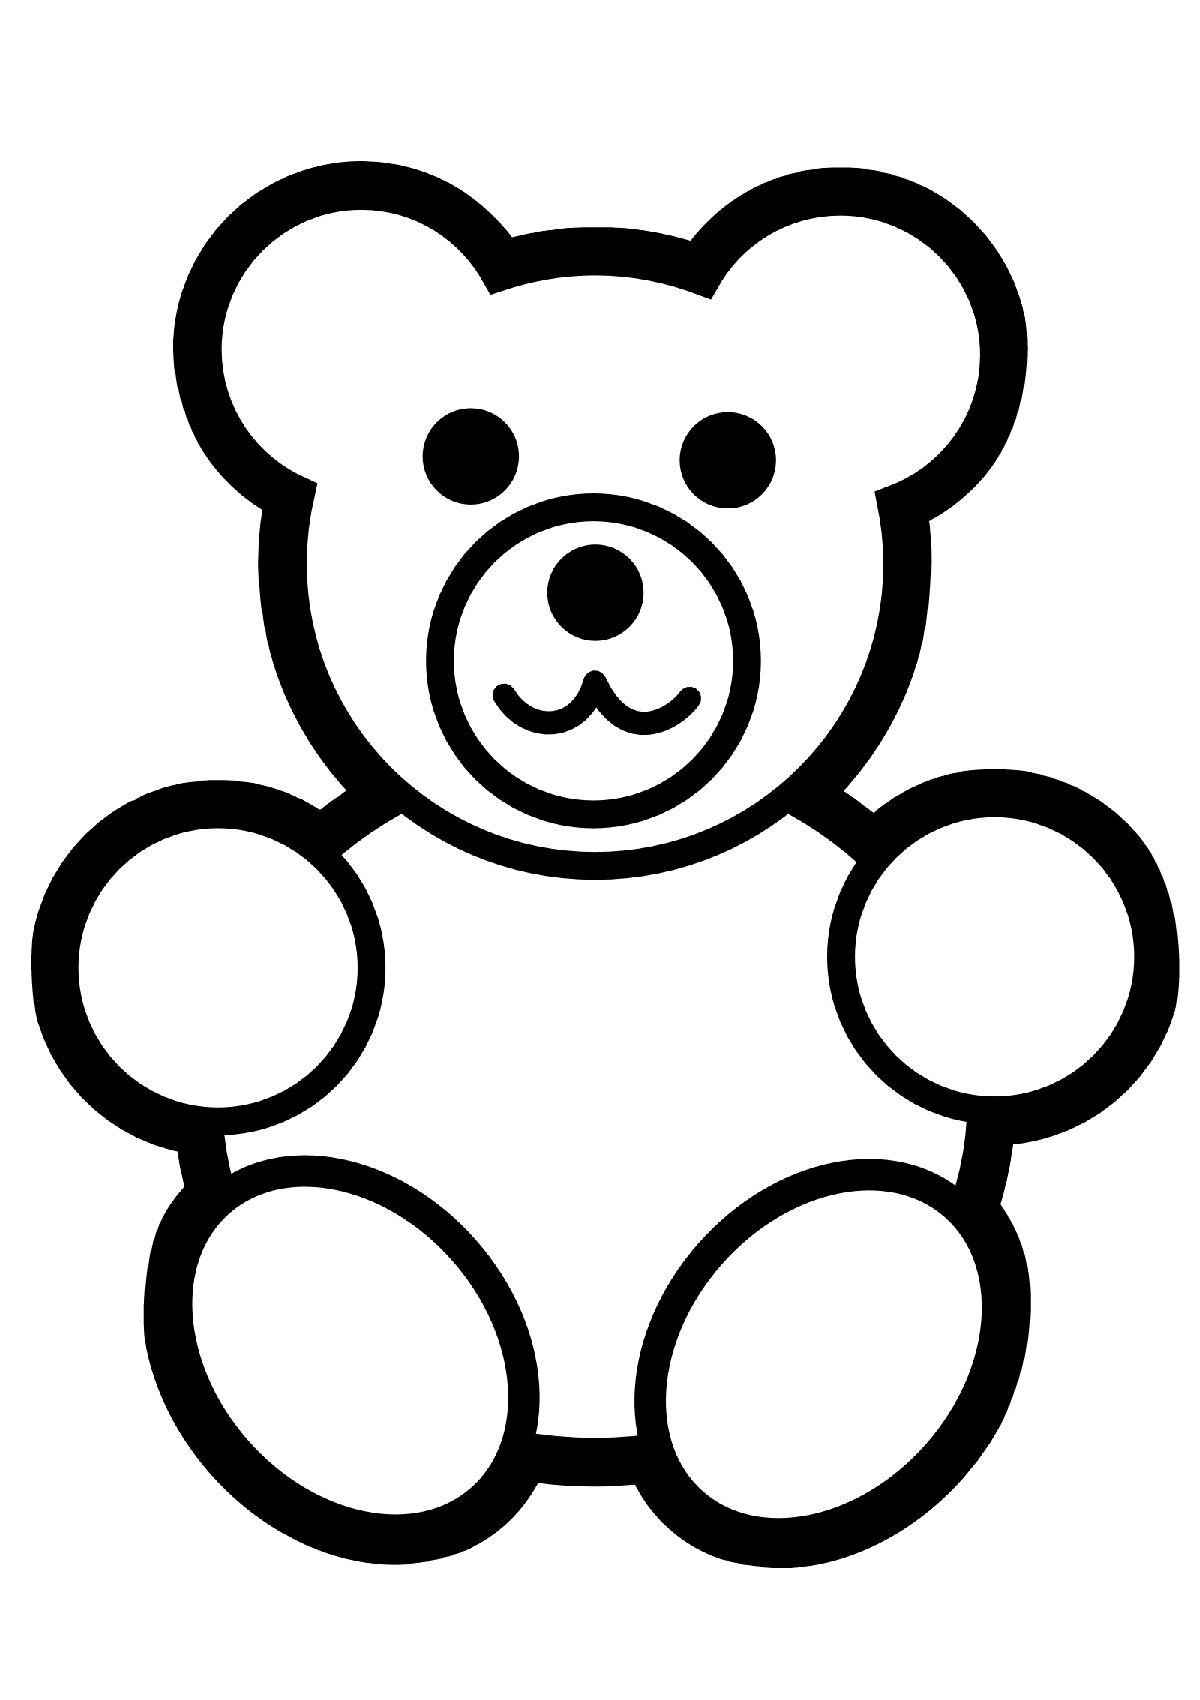 Teddy Bear Simple Kids Coloring Pages Printable   1700x1200